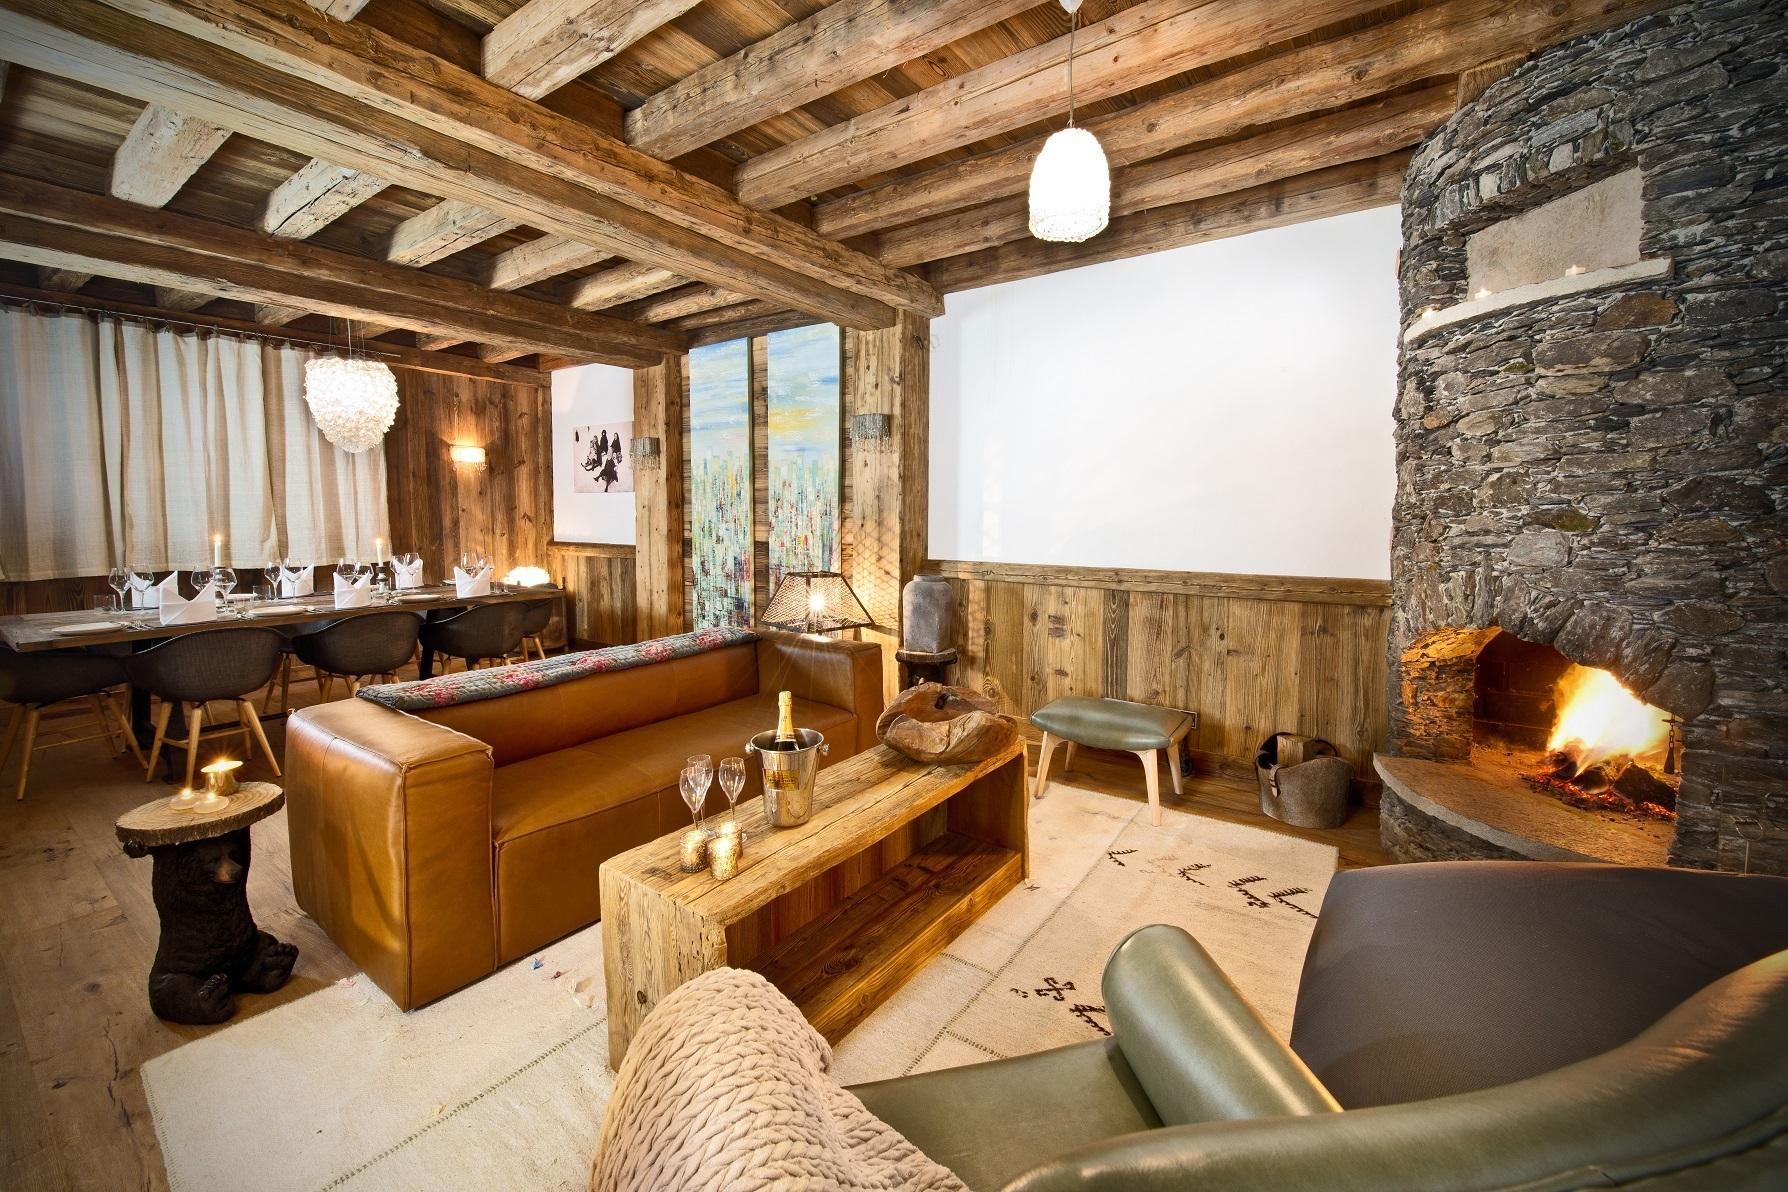 Val d'Isere accommodation chalets for rent in Val d'Isere apartments to rent in Val d'Isere holiday homes to rent in Val d'Isere